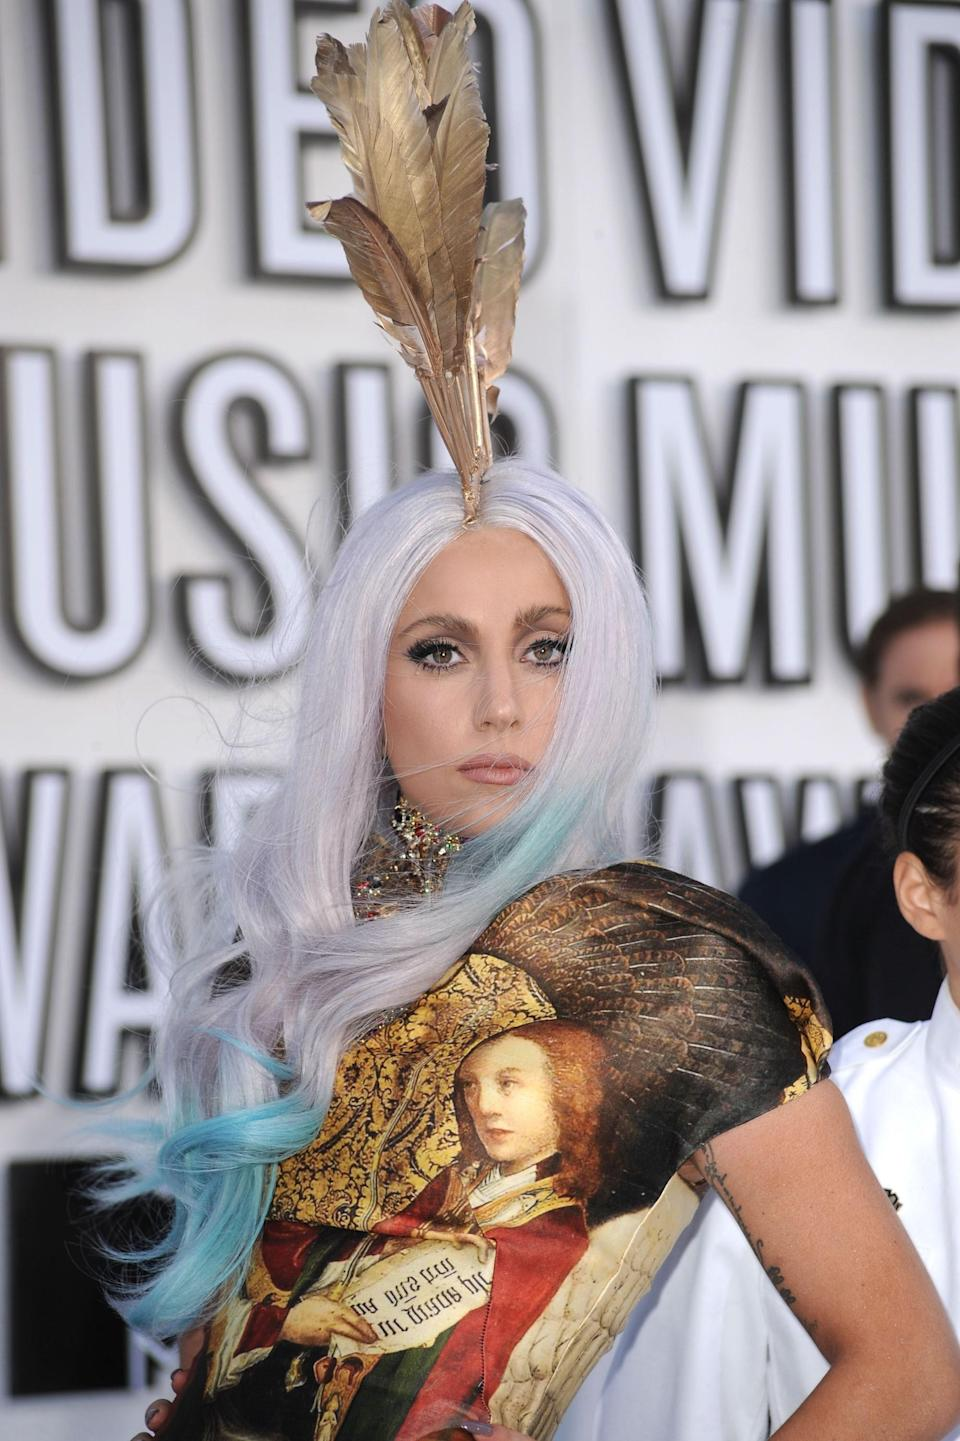 It was all about ombre in 2010, but Lady Gaga's white and blue version took things to a whole new level.